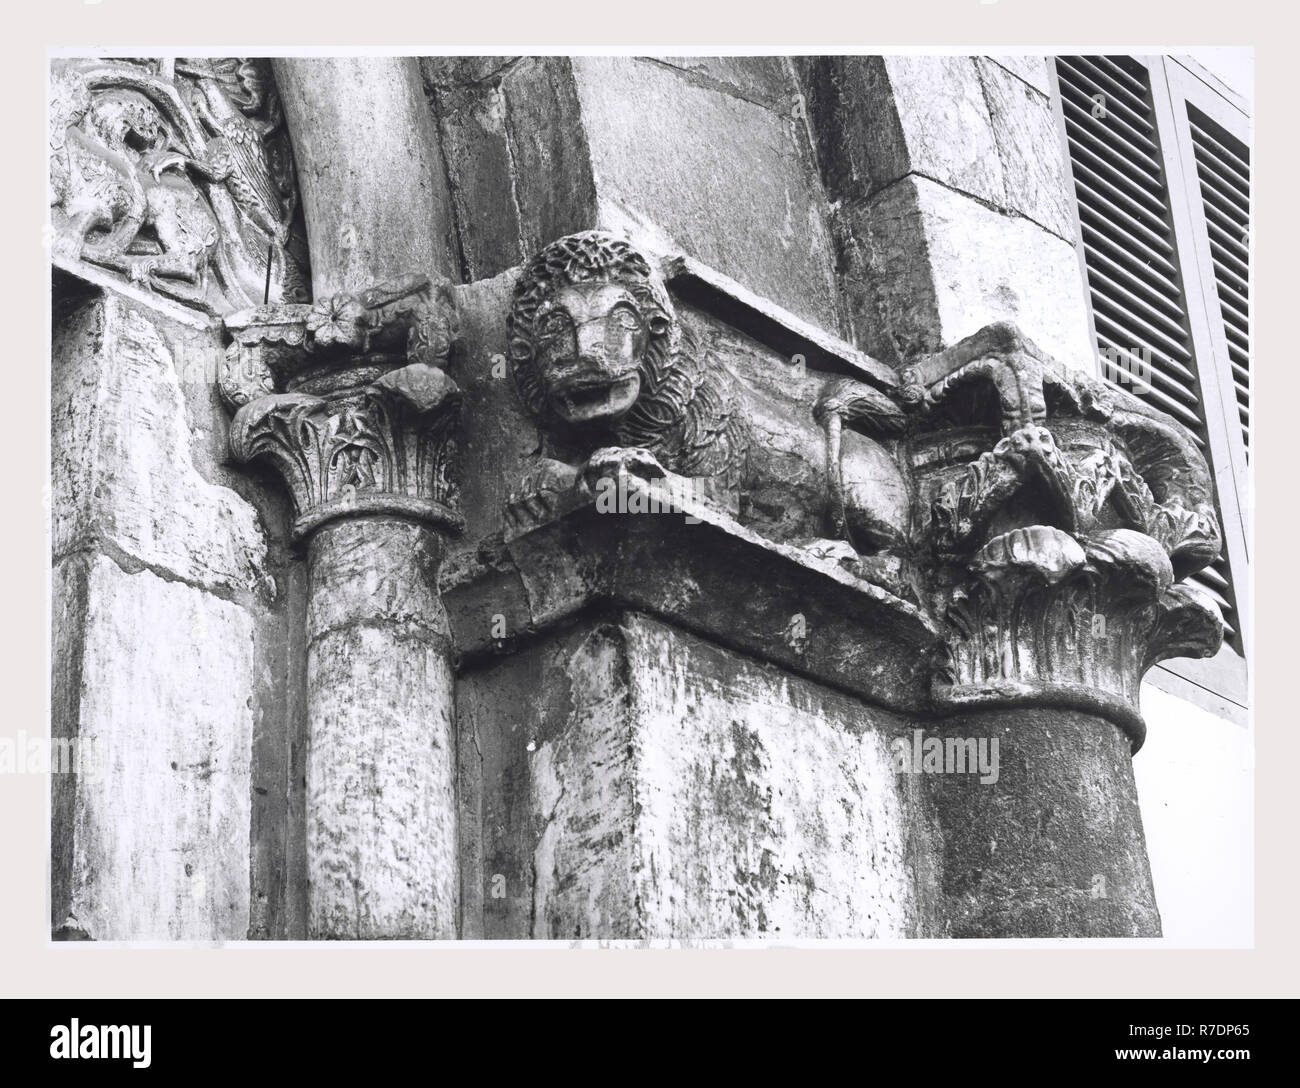 Lazio Viterbo Capranica portale romanico, this is my Italy, the italian country of visual history, Medieval Architecture, architectural sculpture. This portal now a part of the Ospedale Civile dates to the 13th century. The lunette of the portal is adorned with a vine-scroll motif, in which are entwined monstrous half-human/half-animal figures. - Stock Image